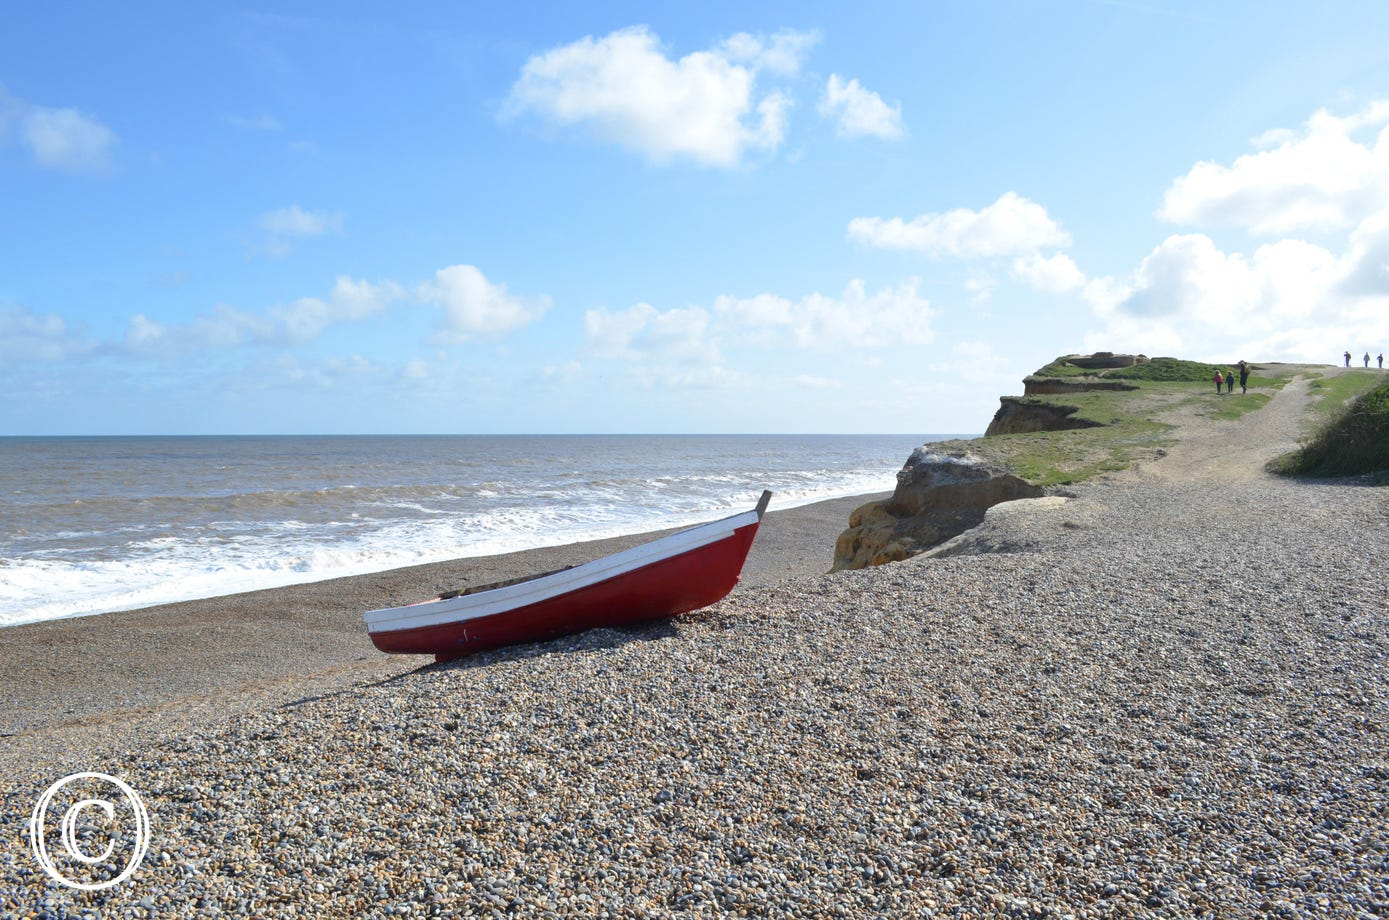 Weybourne Beach located 2 miles away